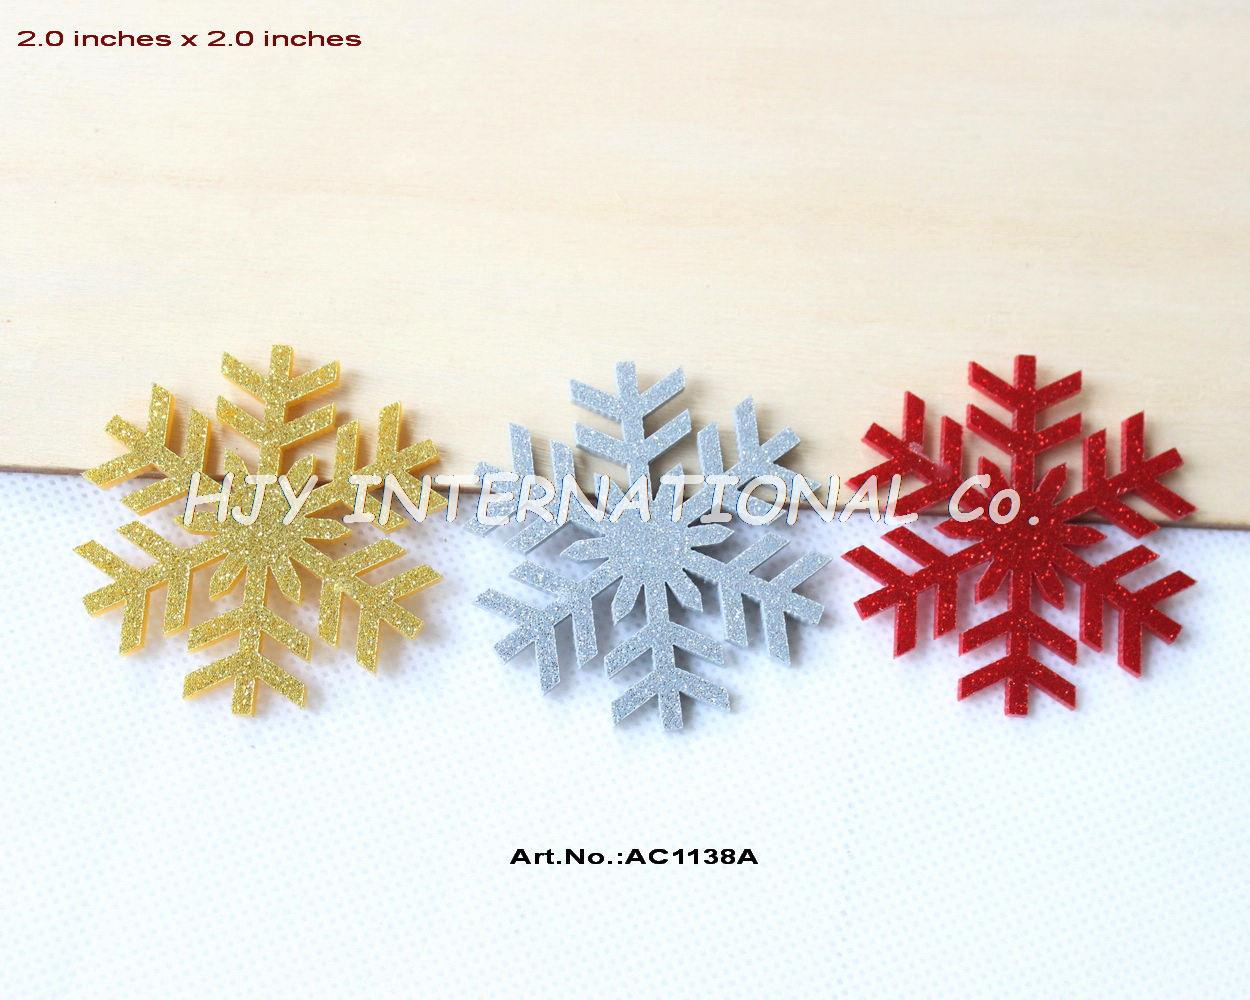 Snowflakes ornaments -  3colors 24pcs Lot 50mm Acrylic Snowflakes Brooches Gold Red Sliver